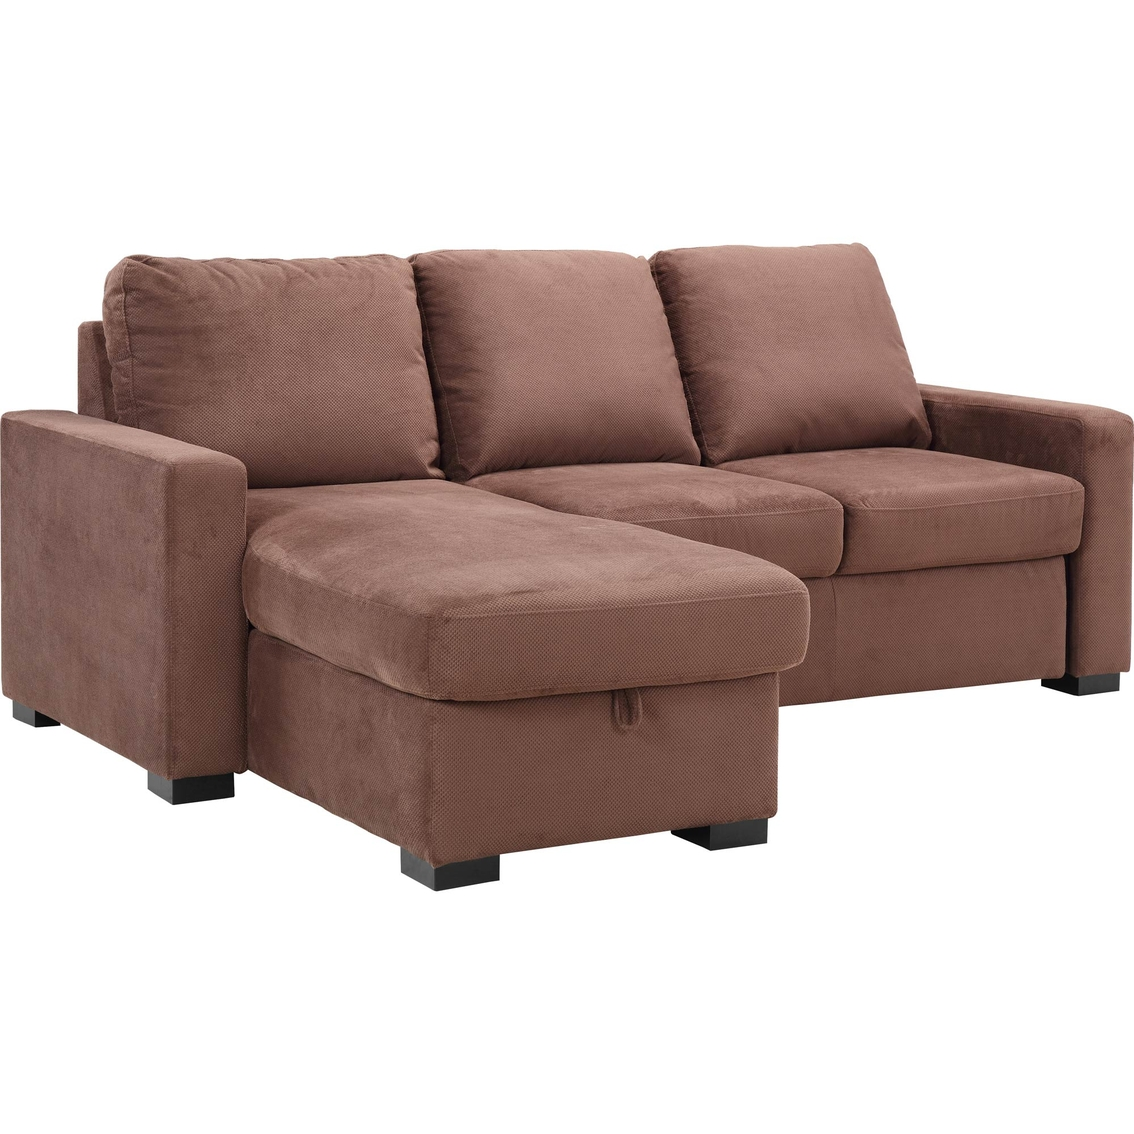 Serta chester convertible sleeper chaise sofa serta for Chaise convertible